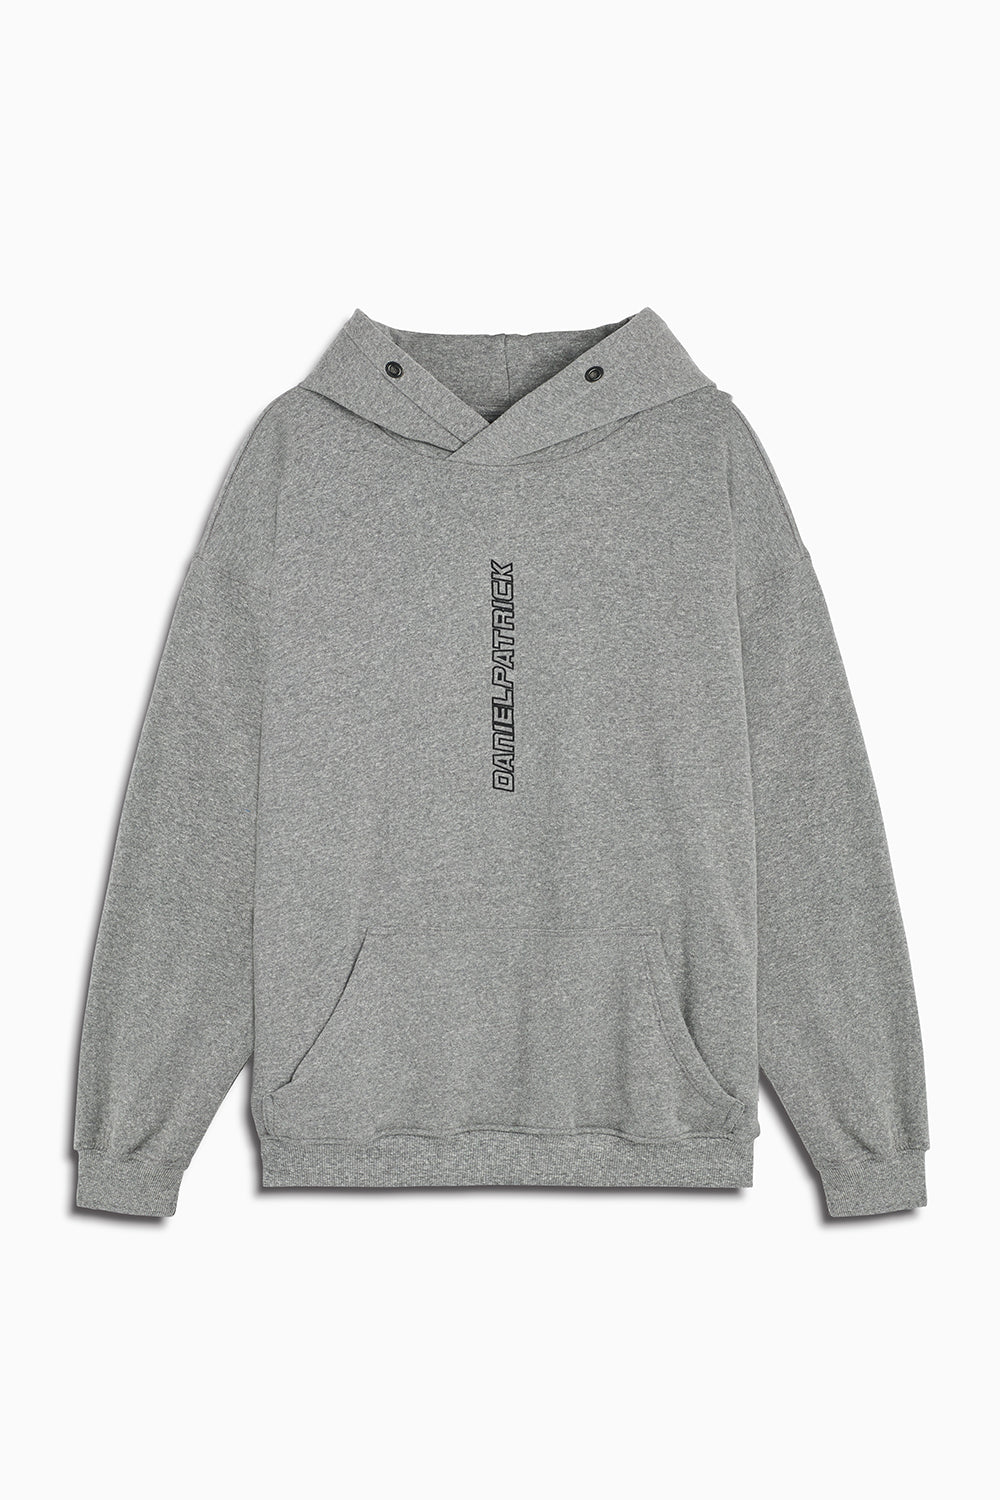 vertical logo hoodie in heather grey/black by daniel patrick